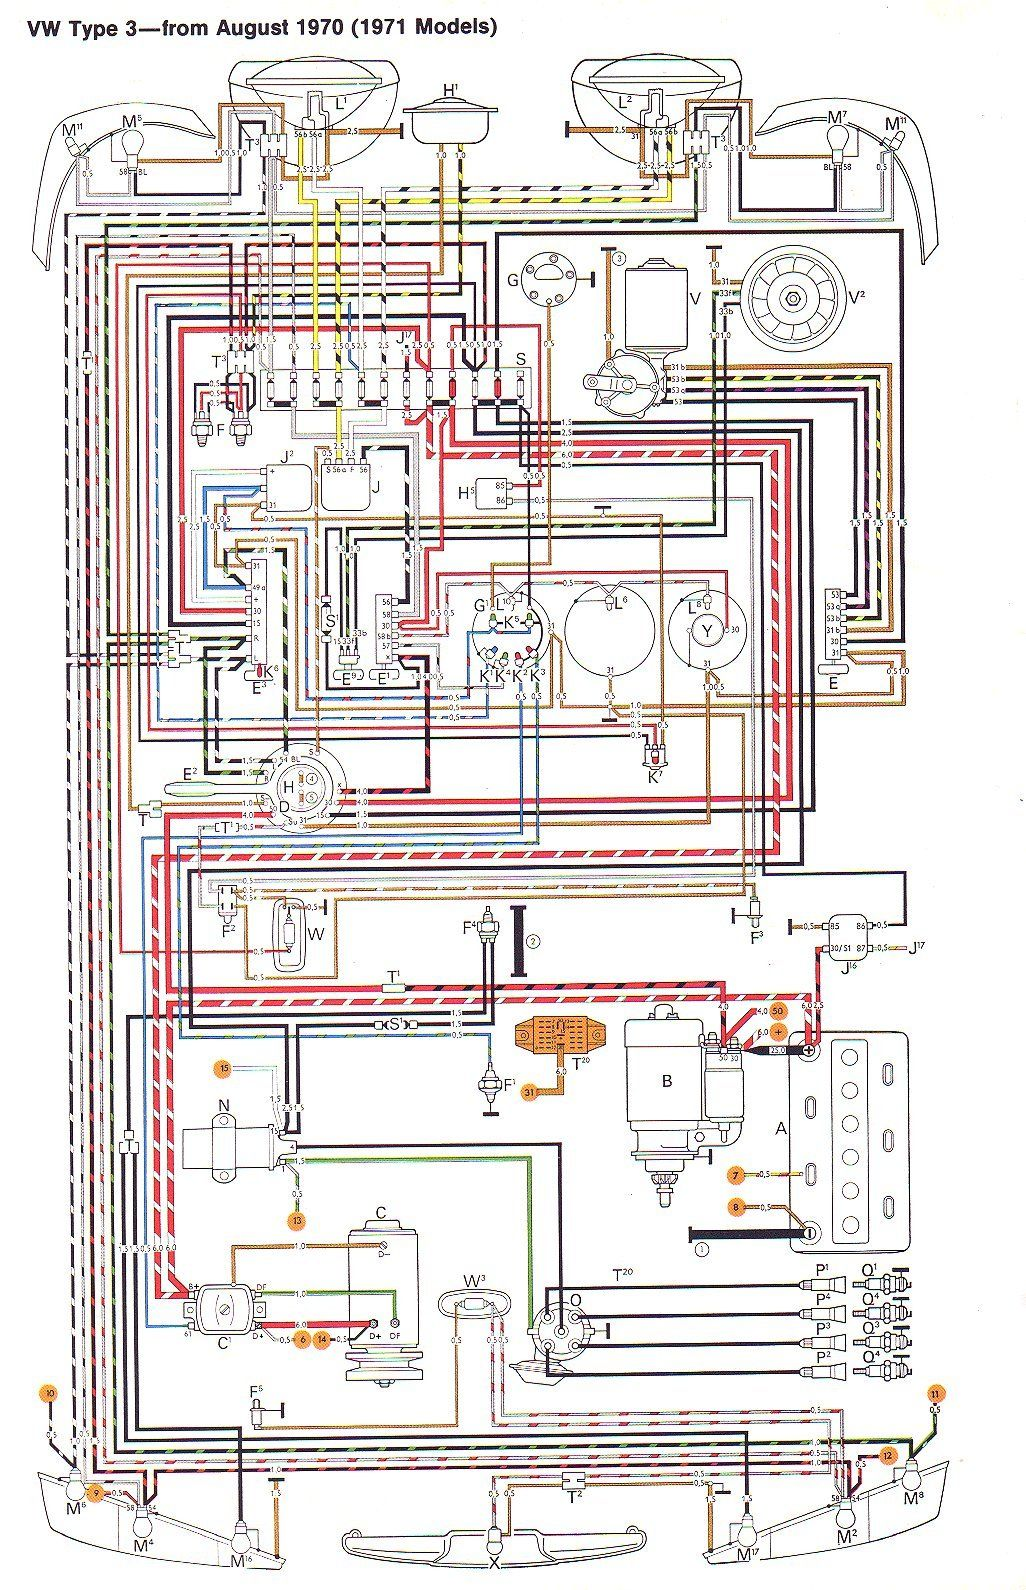 1987 Vw Vanagon Engine Wiring Diagram 37 Images 87 Gl Subaru Wire Harness E0db58370f79a63d02d45f00cf63f44a 71 T3 Ruthie Pinterest Volkswagen At